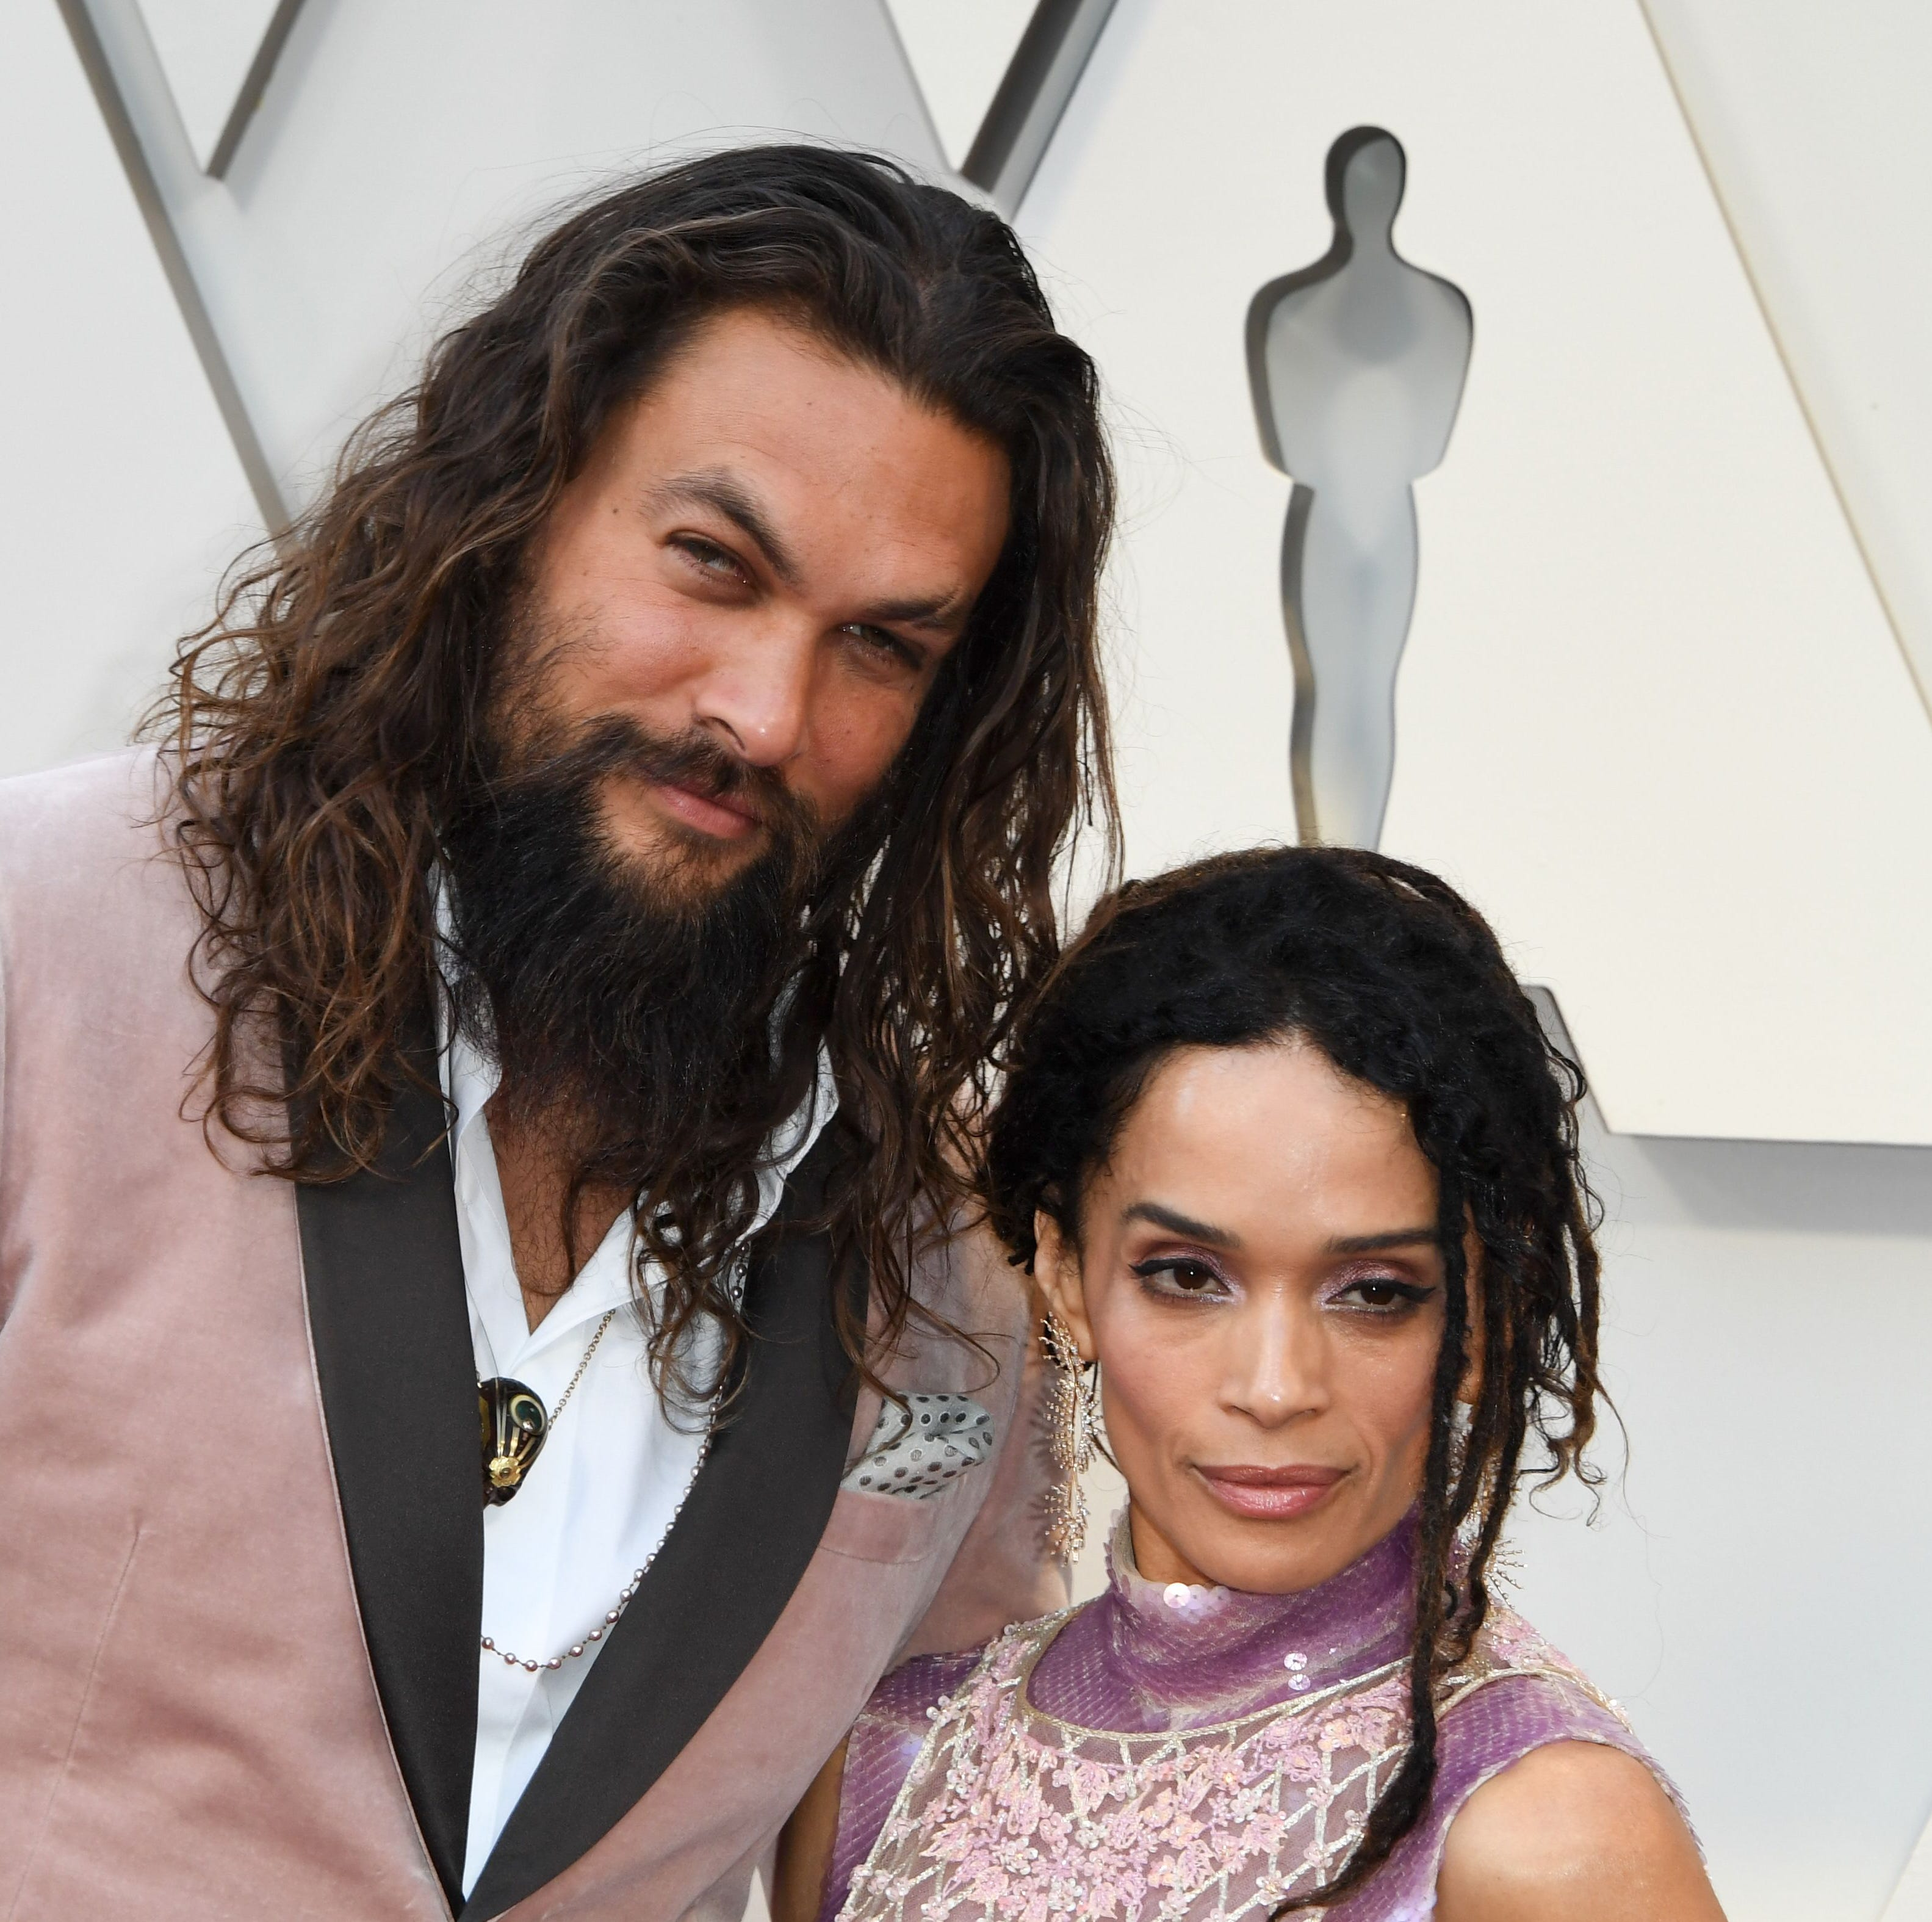 'Aquaman' actor Jason Momoa shaves famous beard for good cause